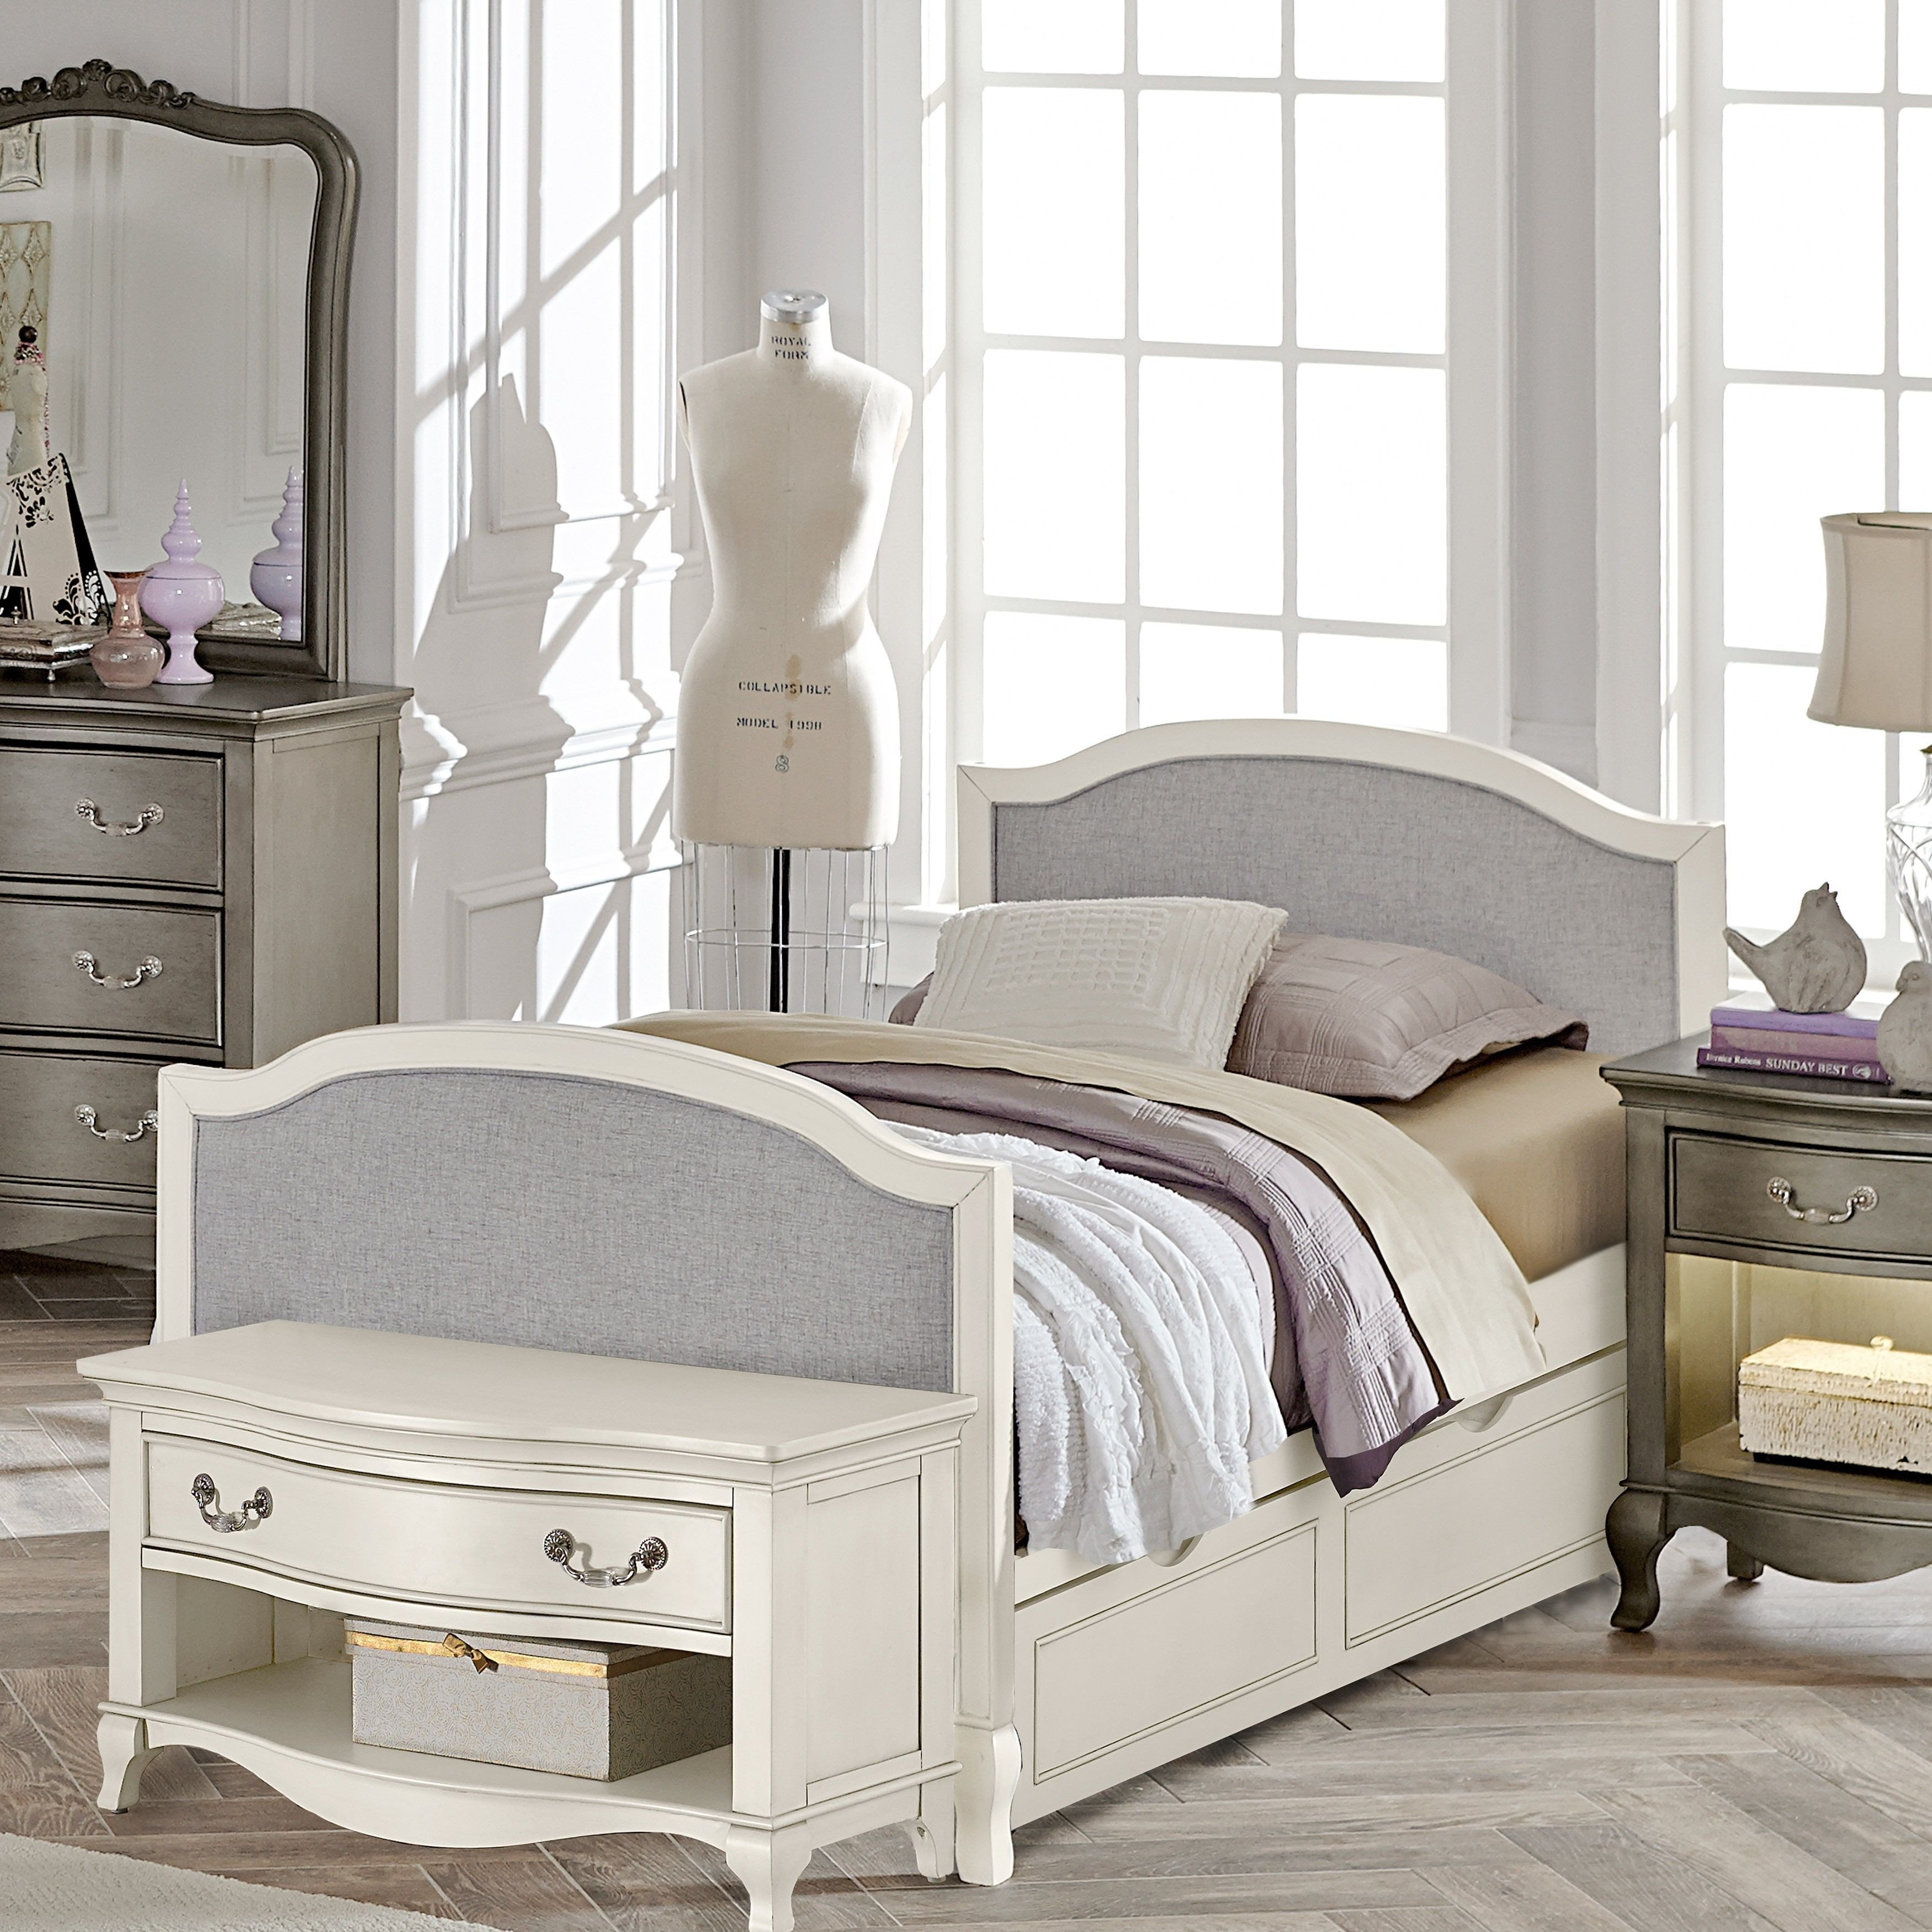 Twin Bedroom Set Ikea Lovely Kensington Victoria Antique White Twin Size Upholstered